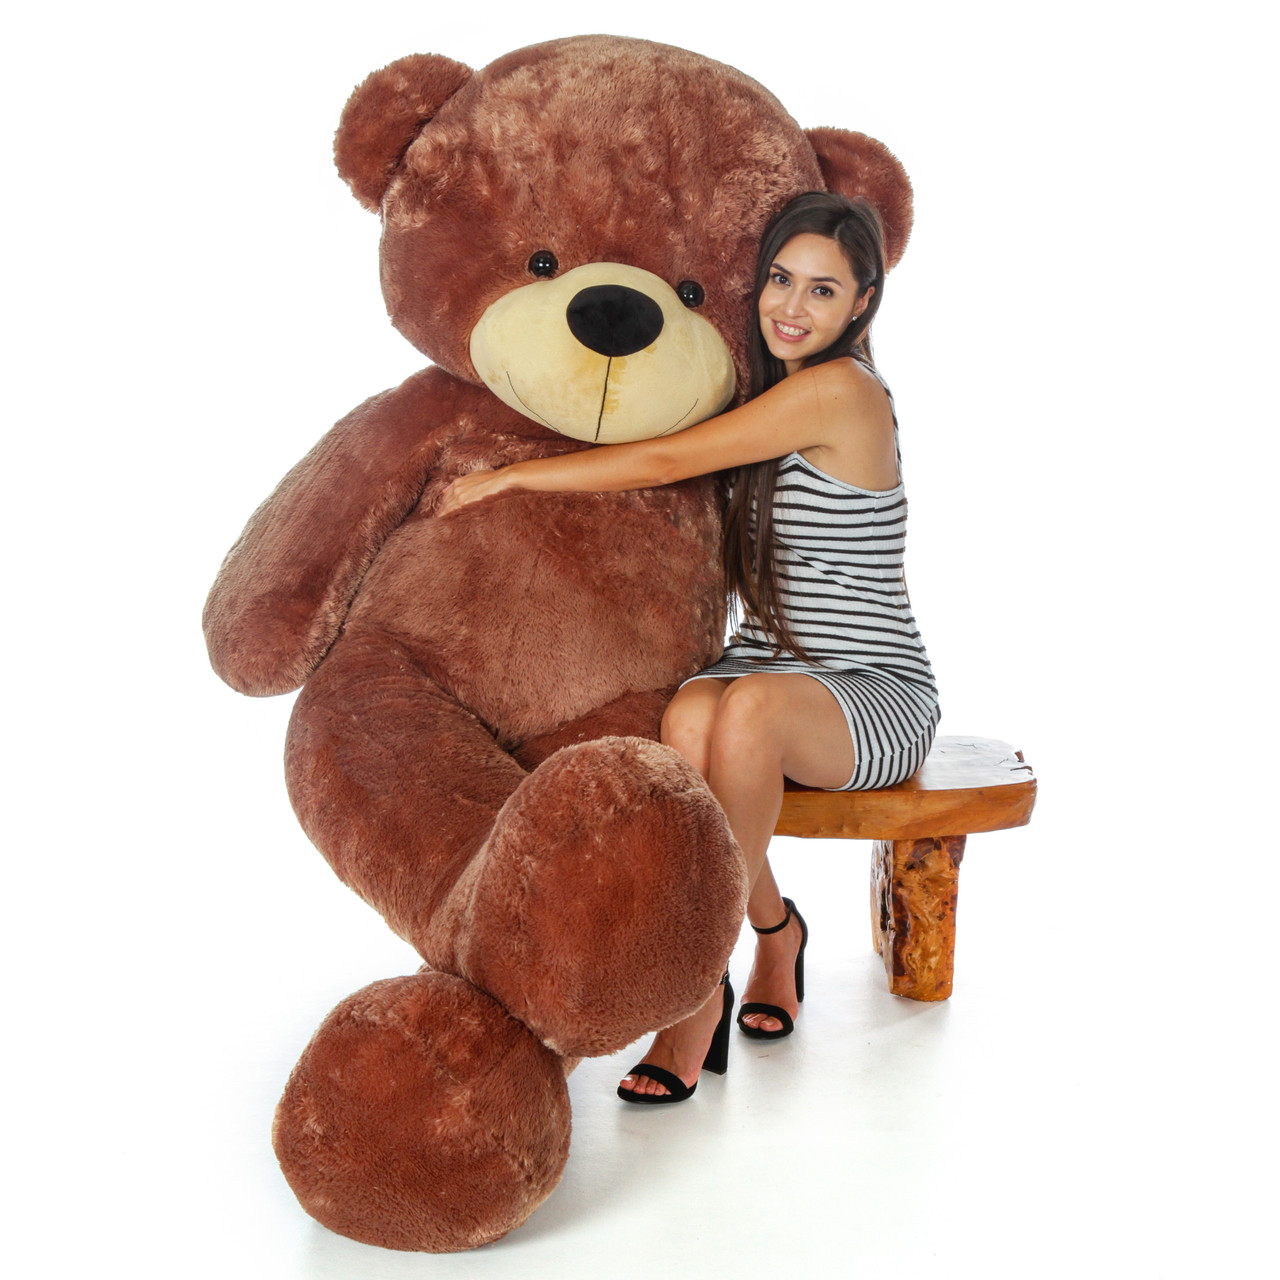 de7d1d5e07c 7 Foot Life Size Giant Teddy Bear Cuddles - The BIGGEST Teddy Bear!